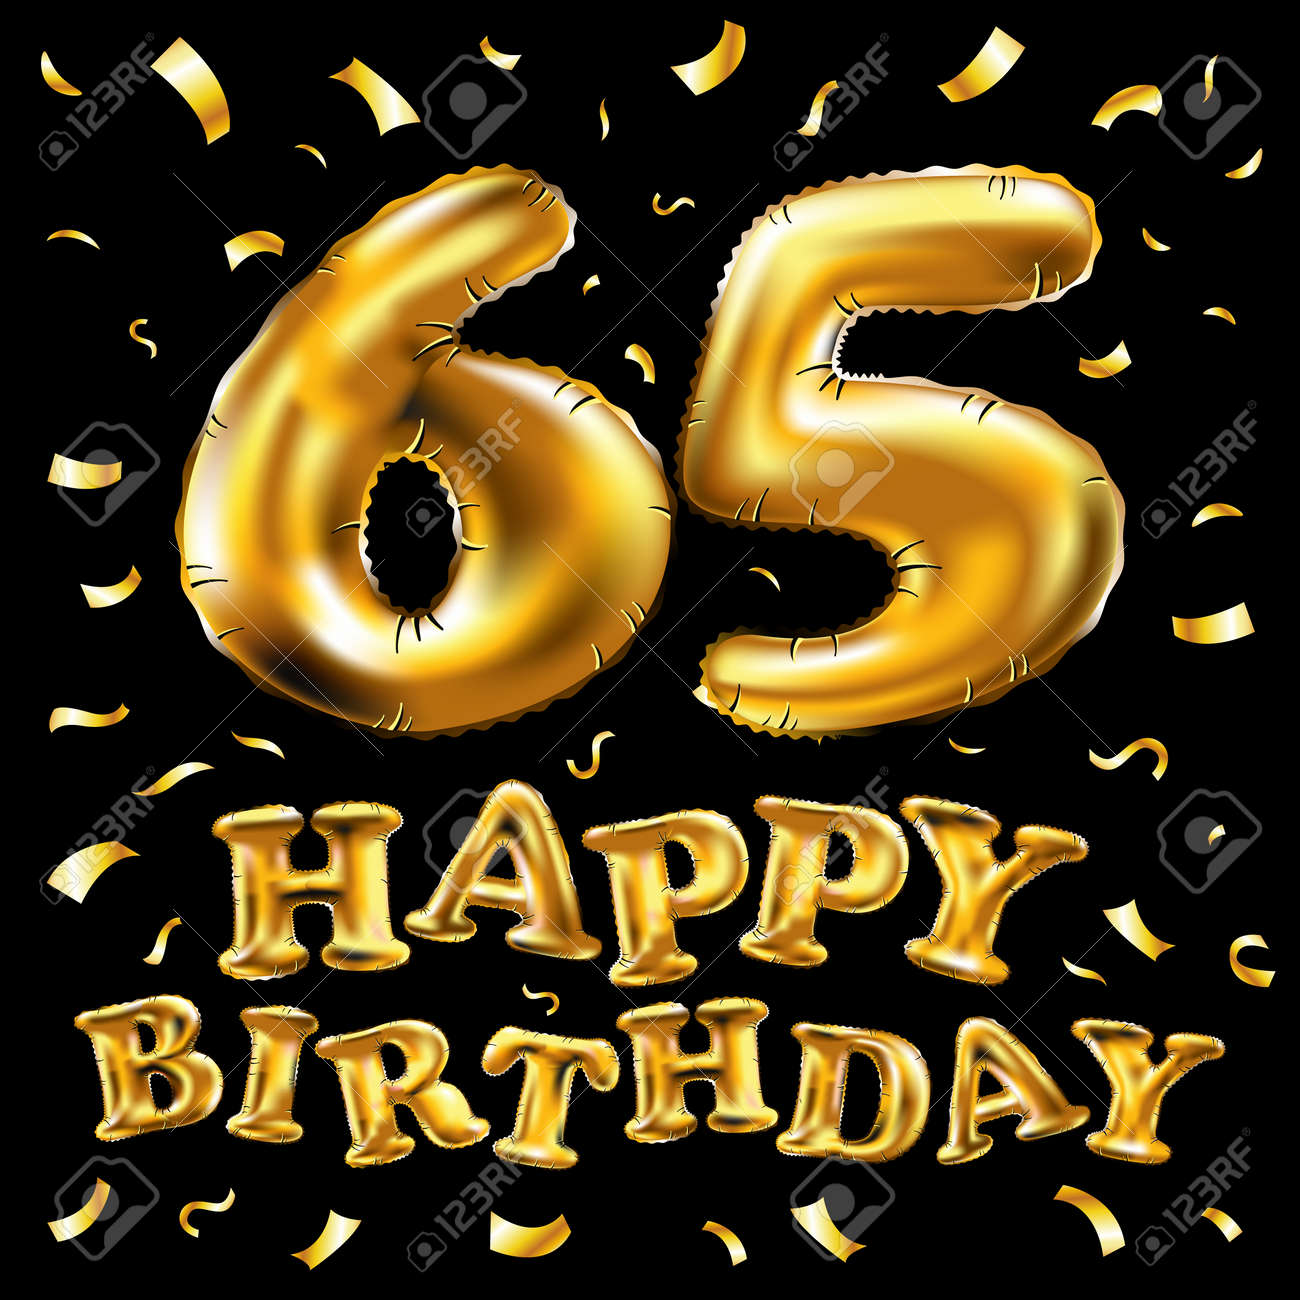 Vector Happy Birthday 65th Celebration Gold Balloons And Golden.. Royalty  Free Cliparts, Vectors, And Stock Illustration. Image 97873656.